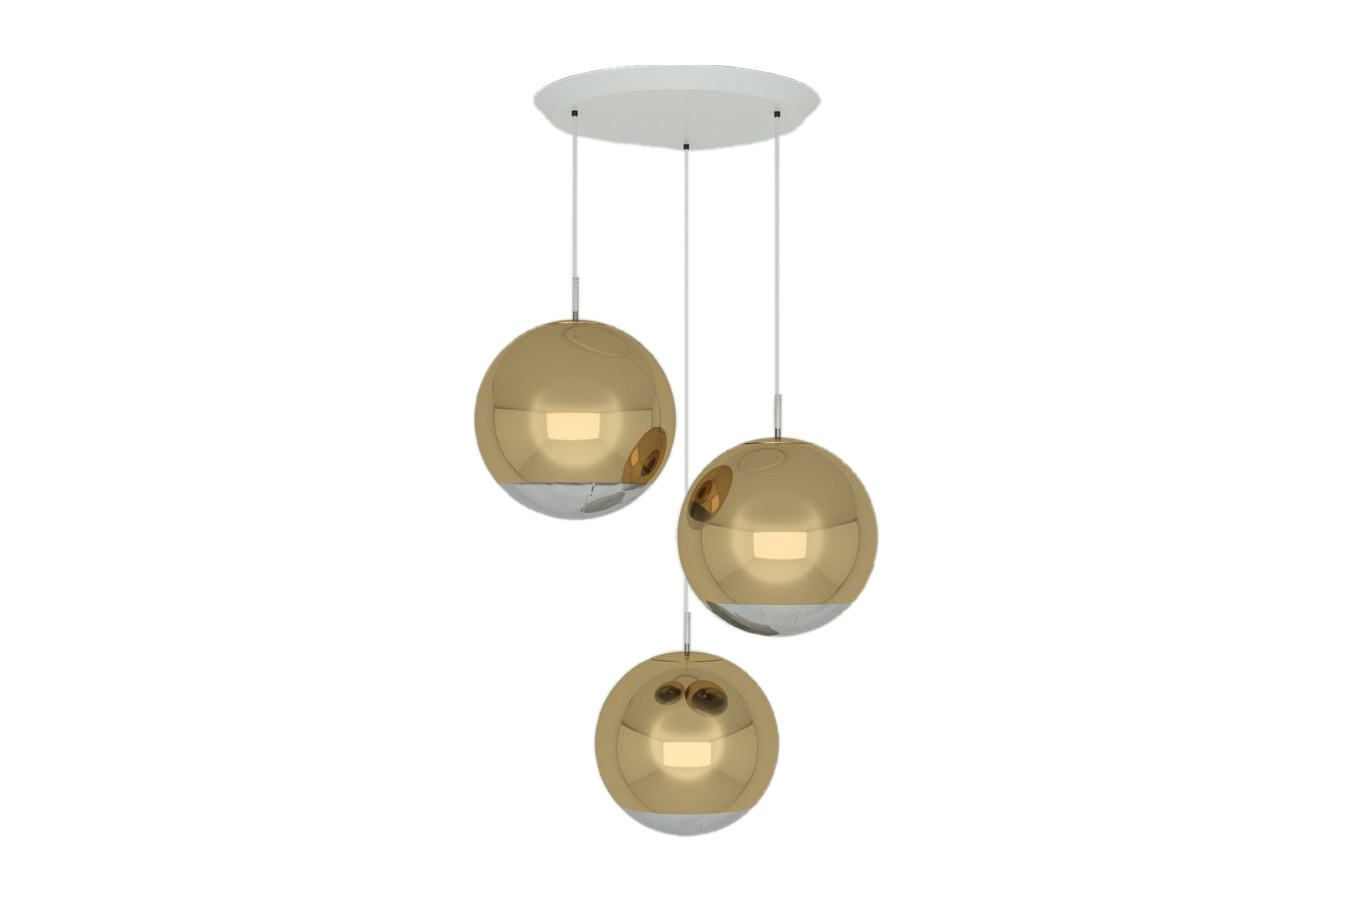 Mirror Ball 40 cm Round Pendant System Gold